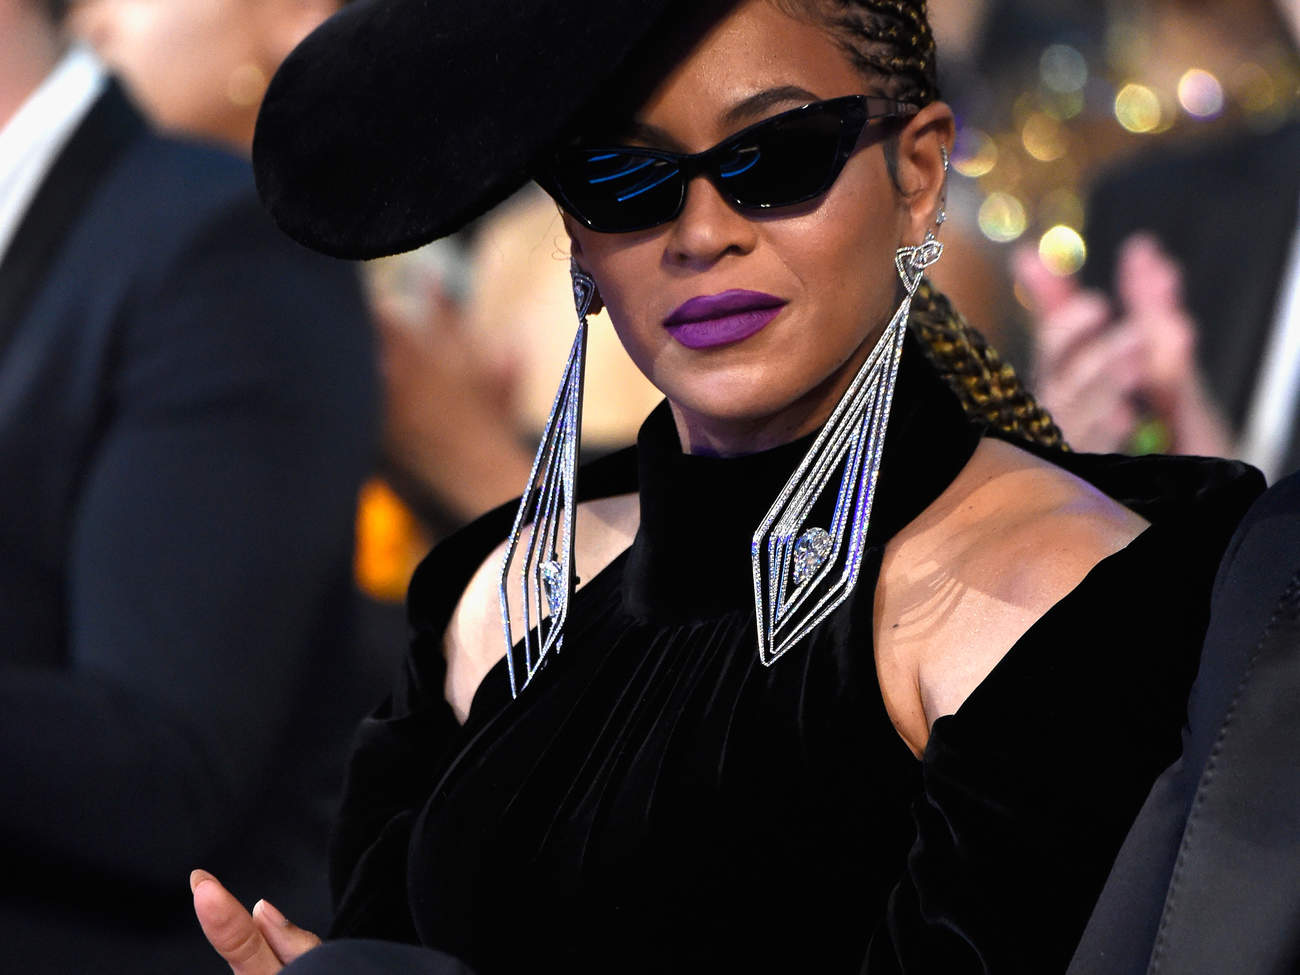 beyonce-grammys-2018-gettyimages-911553530